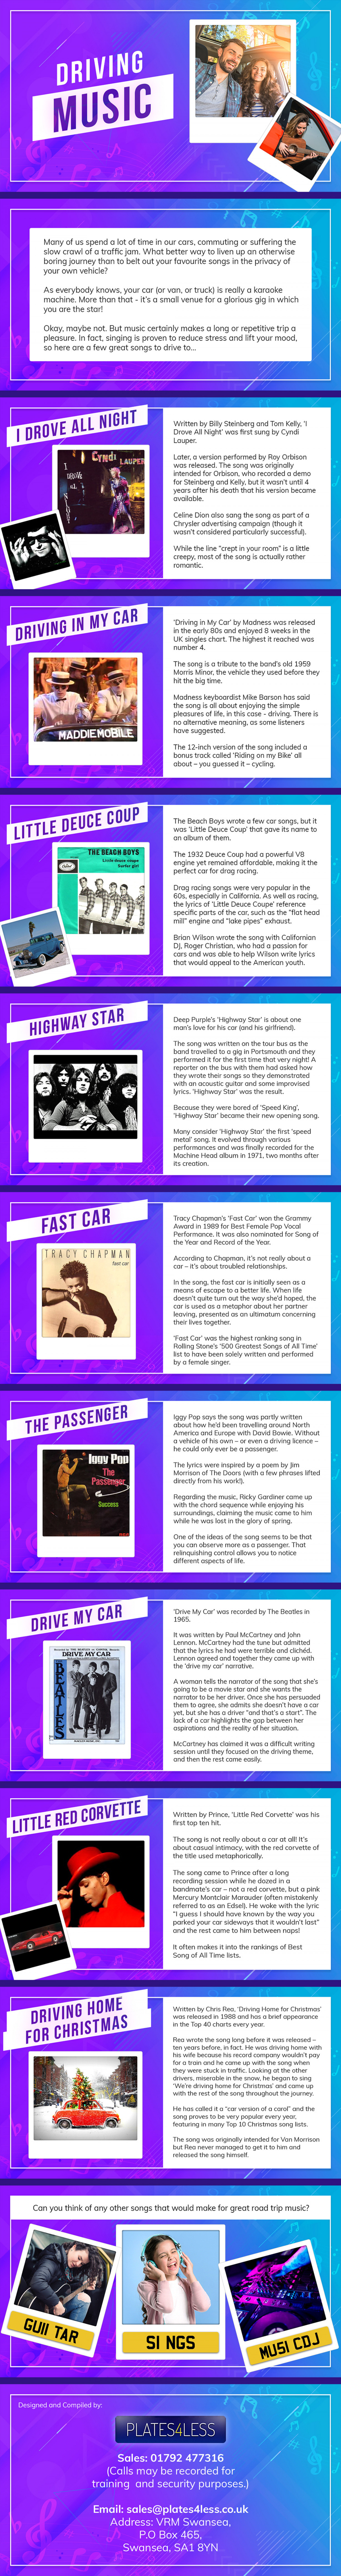 Music To Drive To Infographic